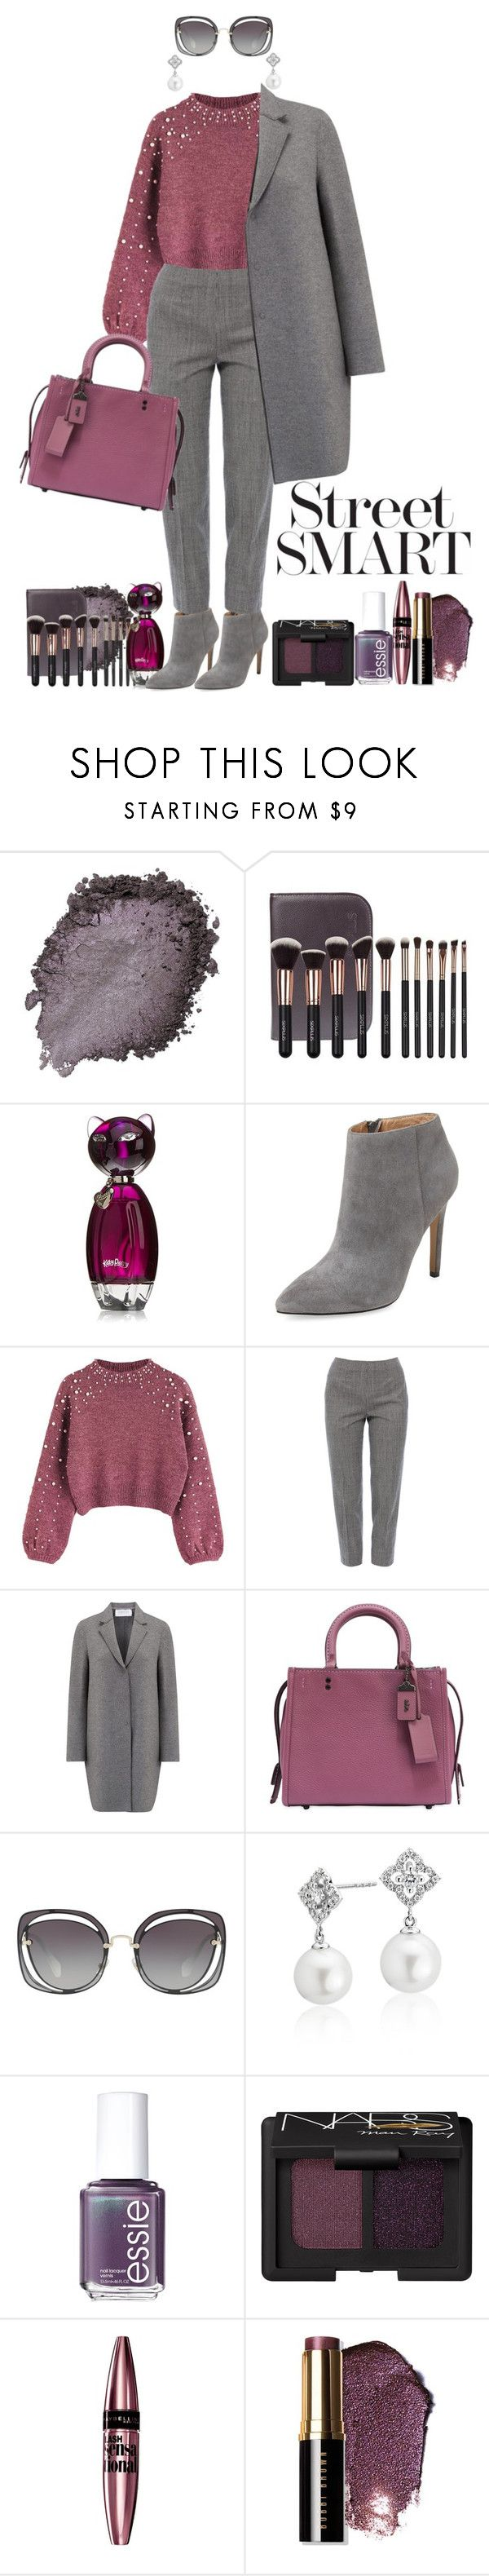 """""""City girl"""" by pelagianath ❤ liked on Polyvore featuring Pure Navy, Piazza Sempione, Harris Wharf London, Coach, Miu Miu, Blue Nile, Essie, NARS Cosmetics, Maybelline and Bobbi Brown Cosmetics"""